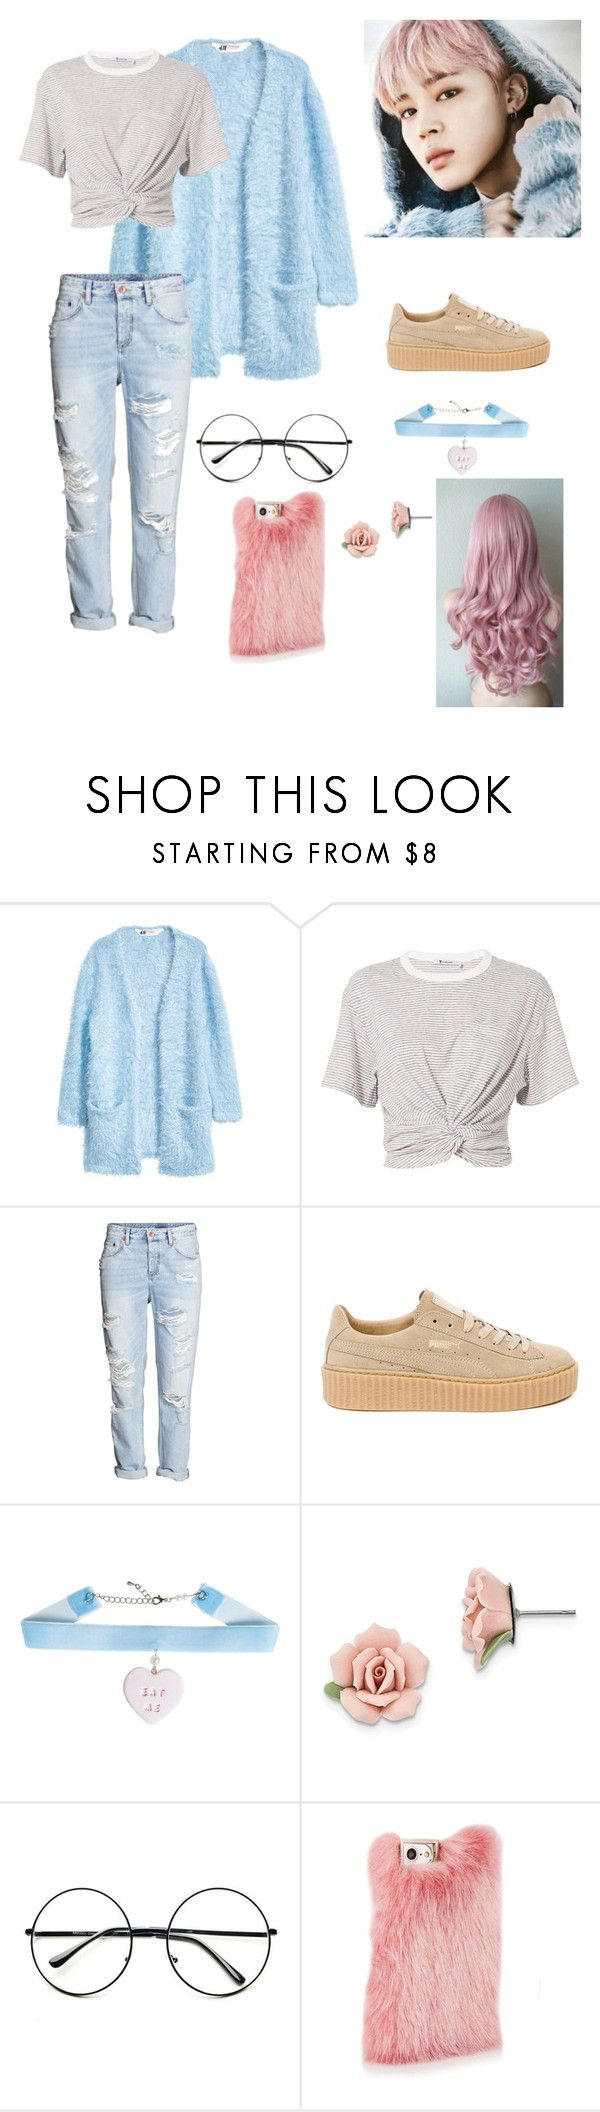 """Jimin casual outfit ( spring day )"" by bts4ever02 ❤ liked on Polyvore featuring H&M, T By Alexander Wang, Puma, 1928 and Retrò"